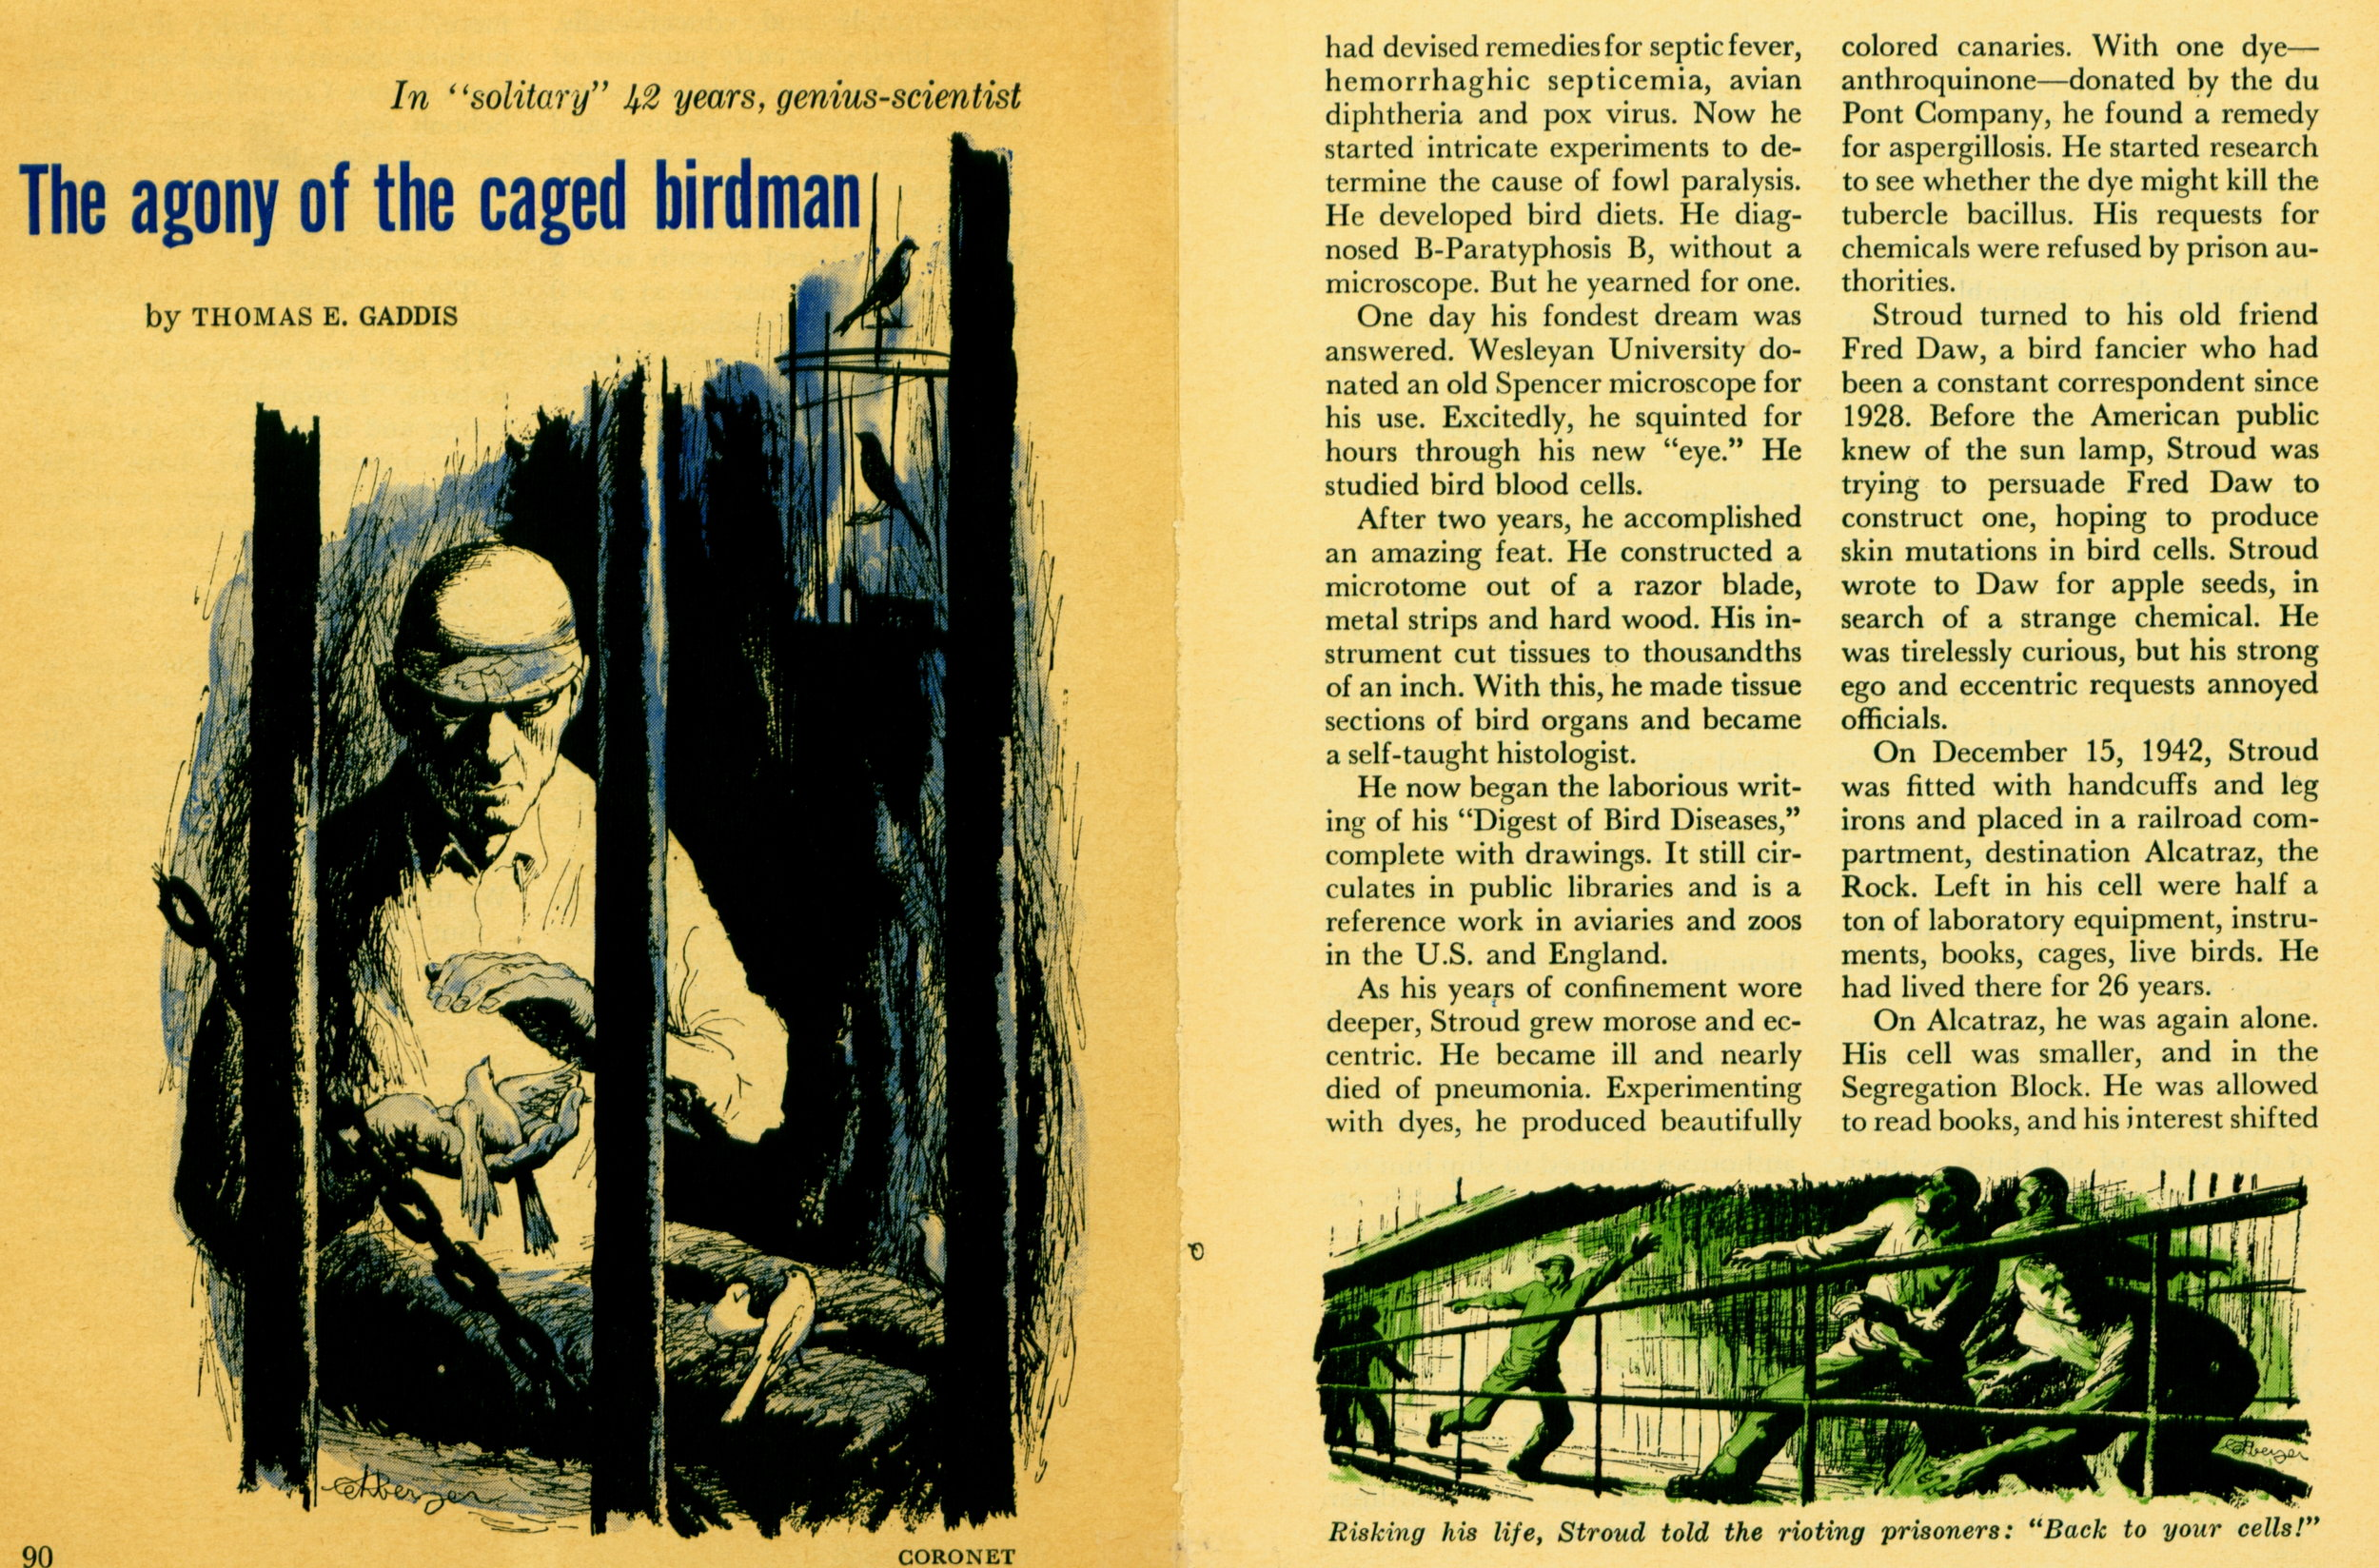 October 1958 - The Agony of the Caged Birdman